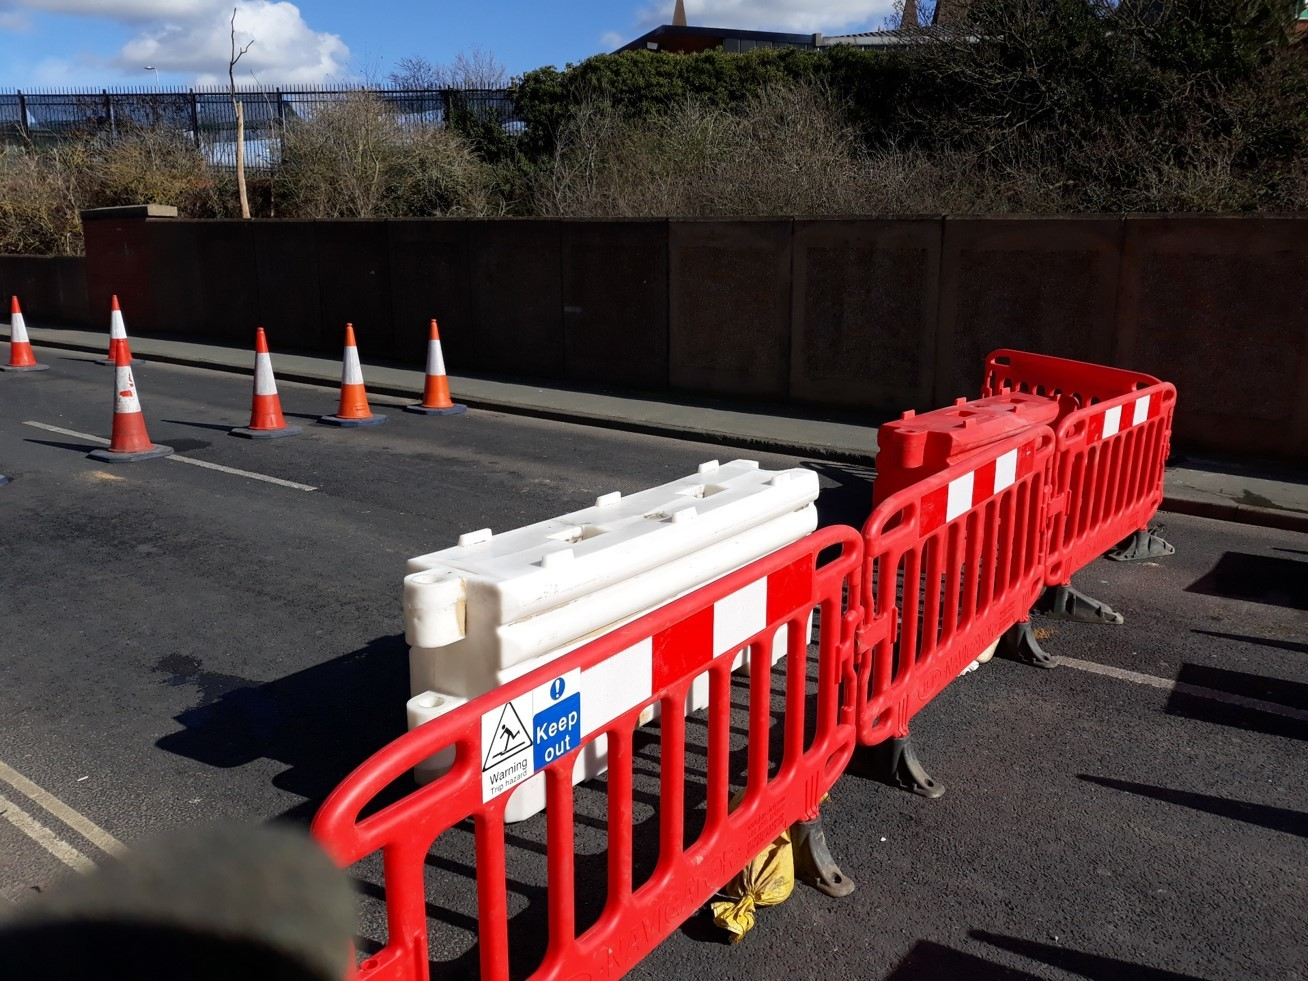 Blocked - barrier reinforcements in Ipswich Road